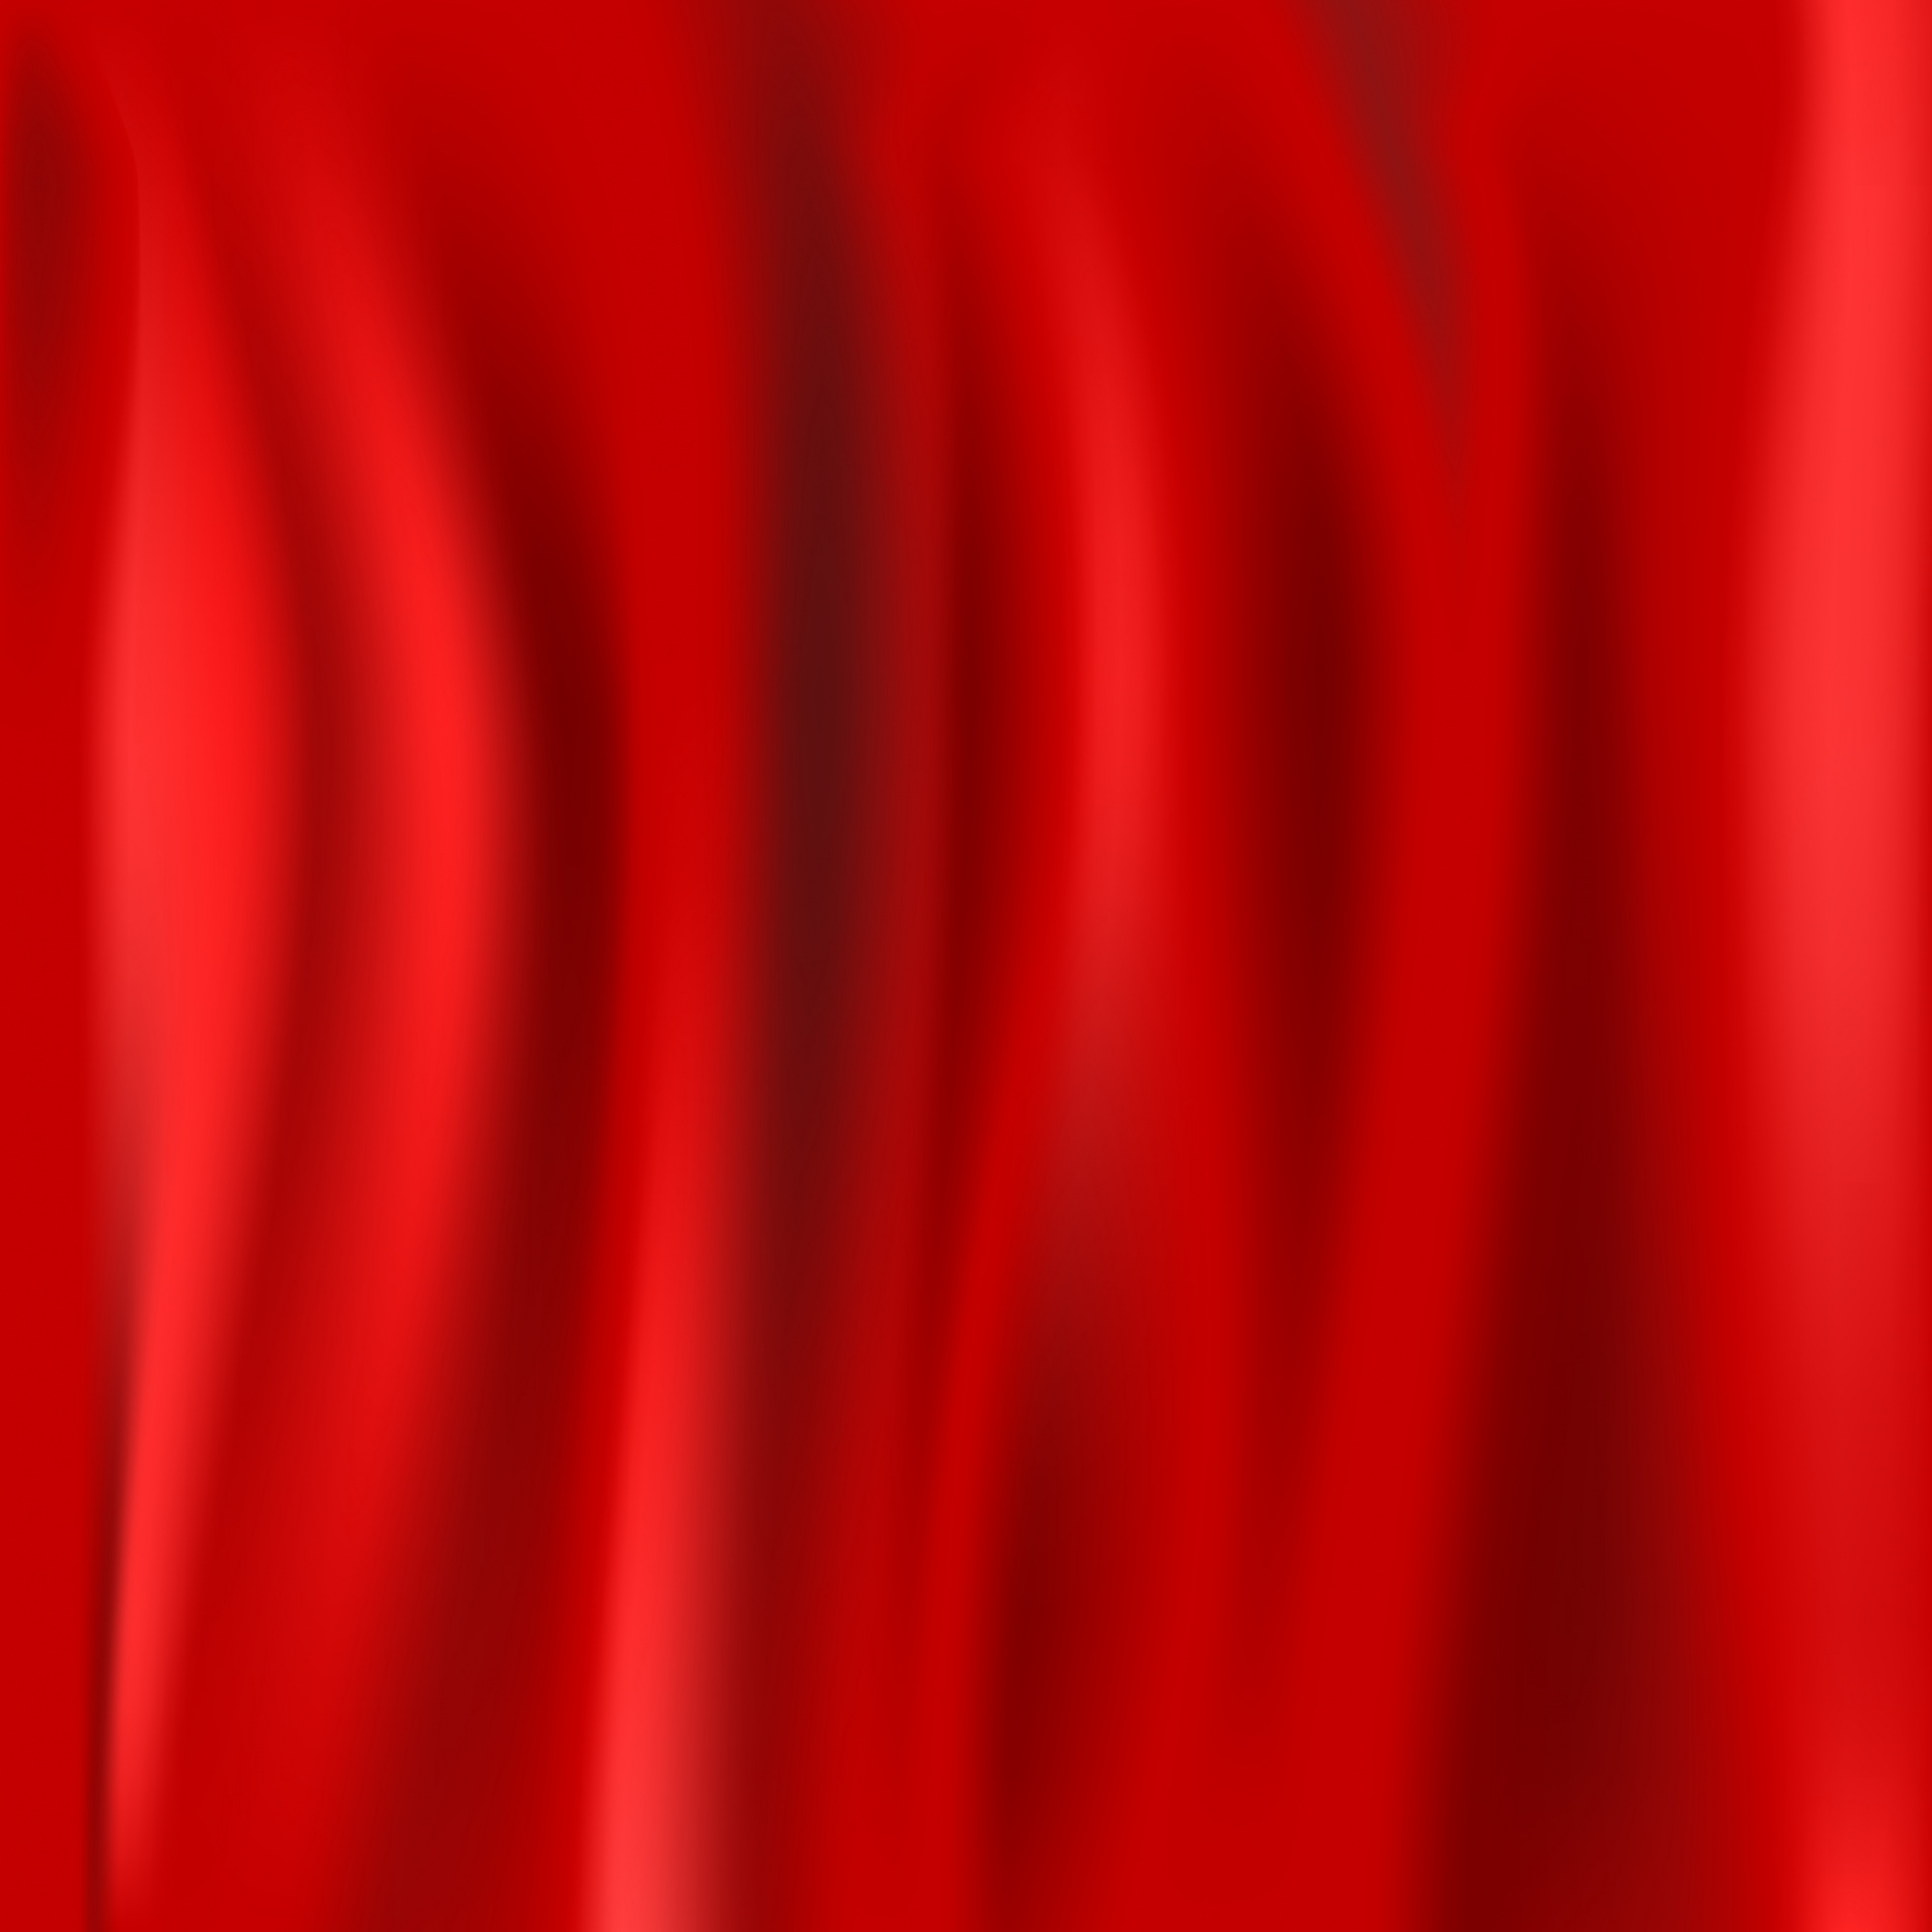 Concept textile red traditional art